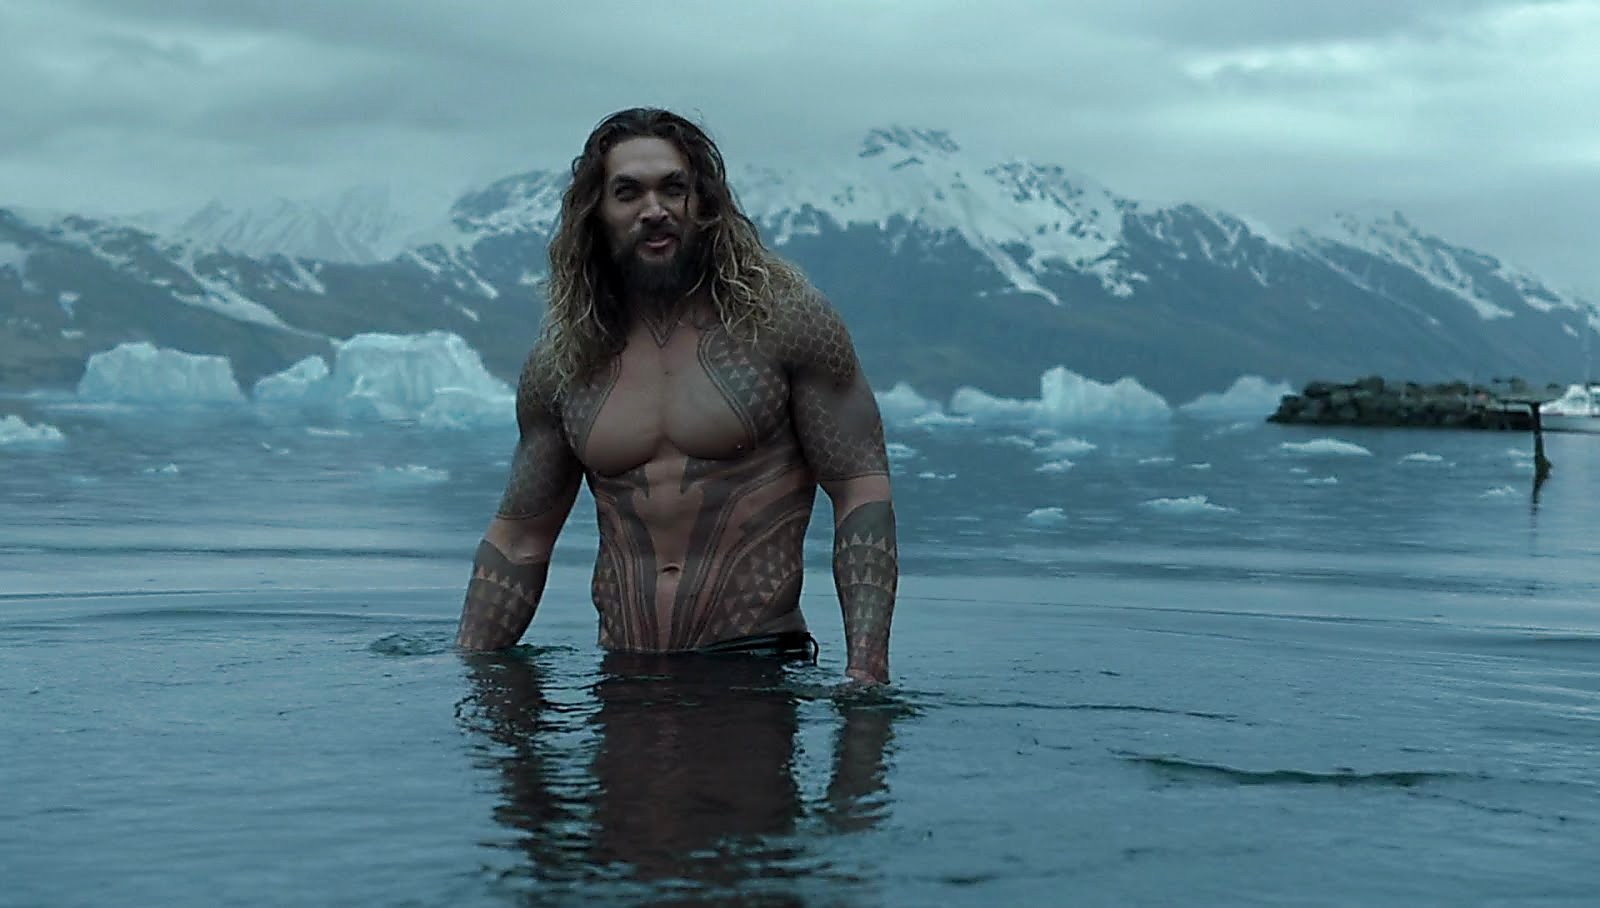 Jason Momoa  Justice League 2018 02 13 0